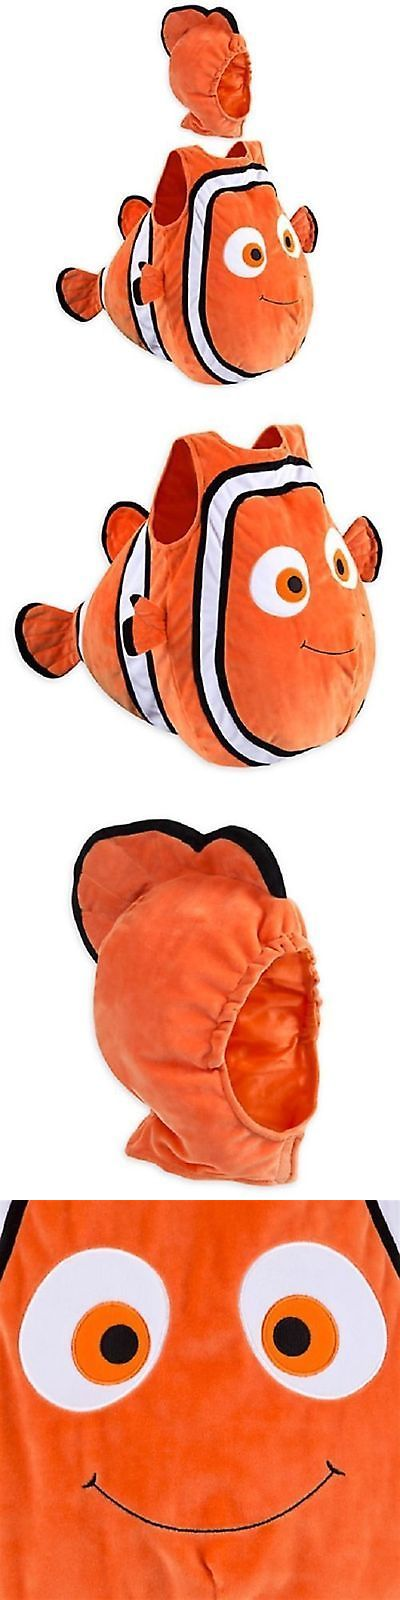 Kids Costumes: Disney Store Nemo Finding Dory Baby Infant Toddler Costume Halloween 12-18 Month BUY IT NOW ONLY: $124.95